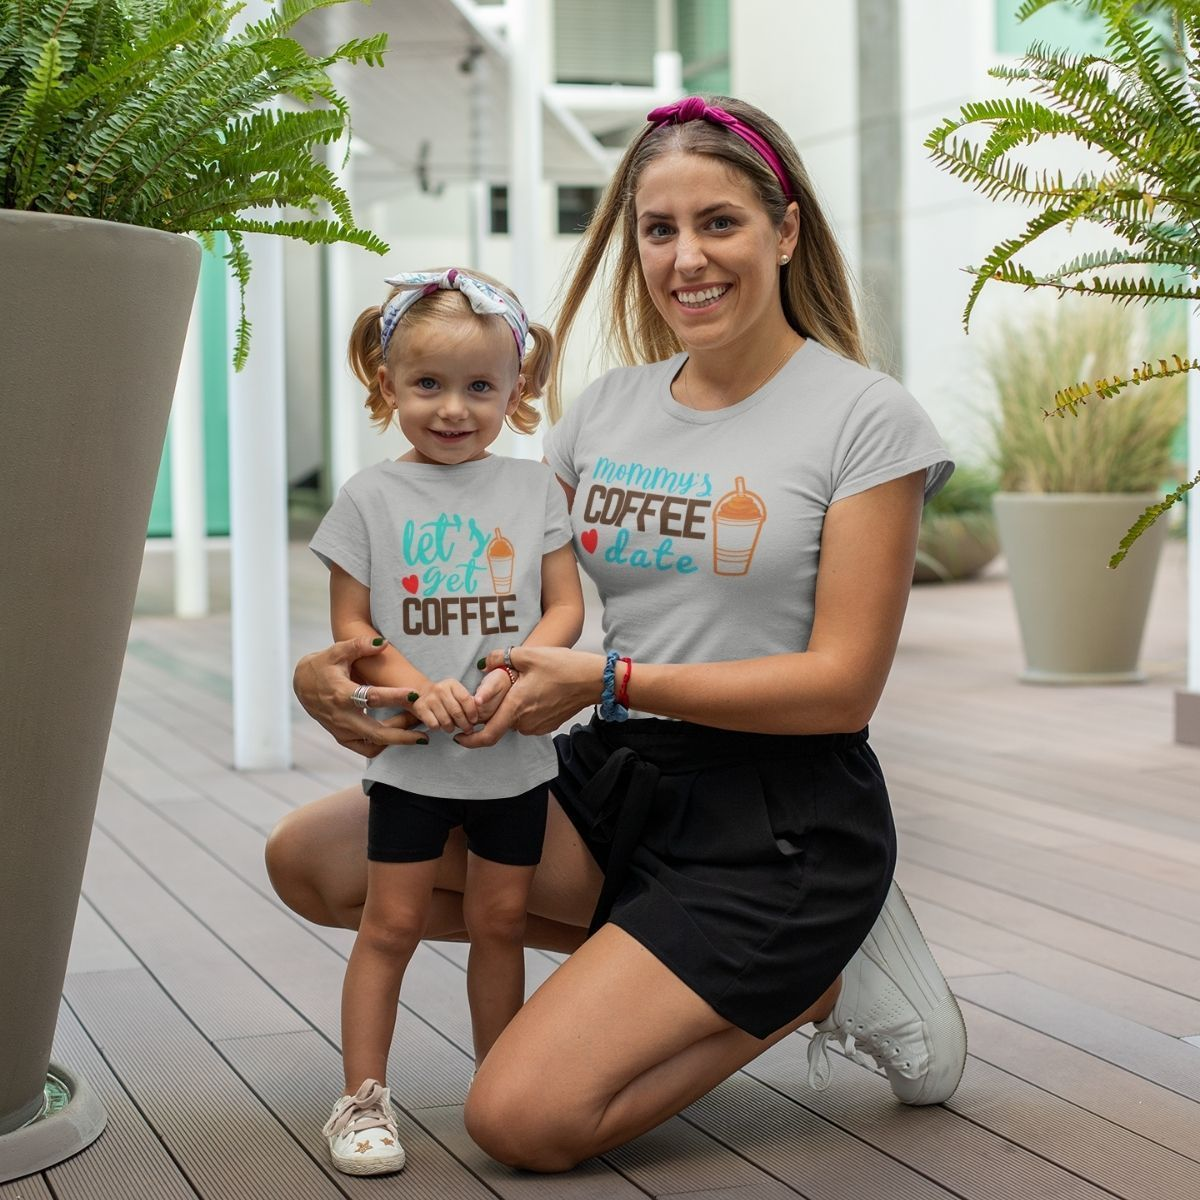 Coffee Mommy's date Matching Shirts for Mom Daughter - 18-24 months Kid Shirt / Gray